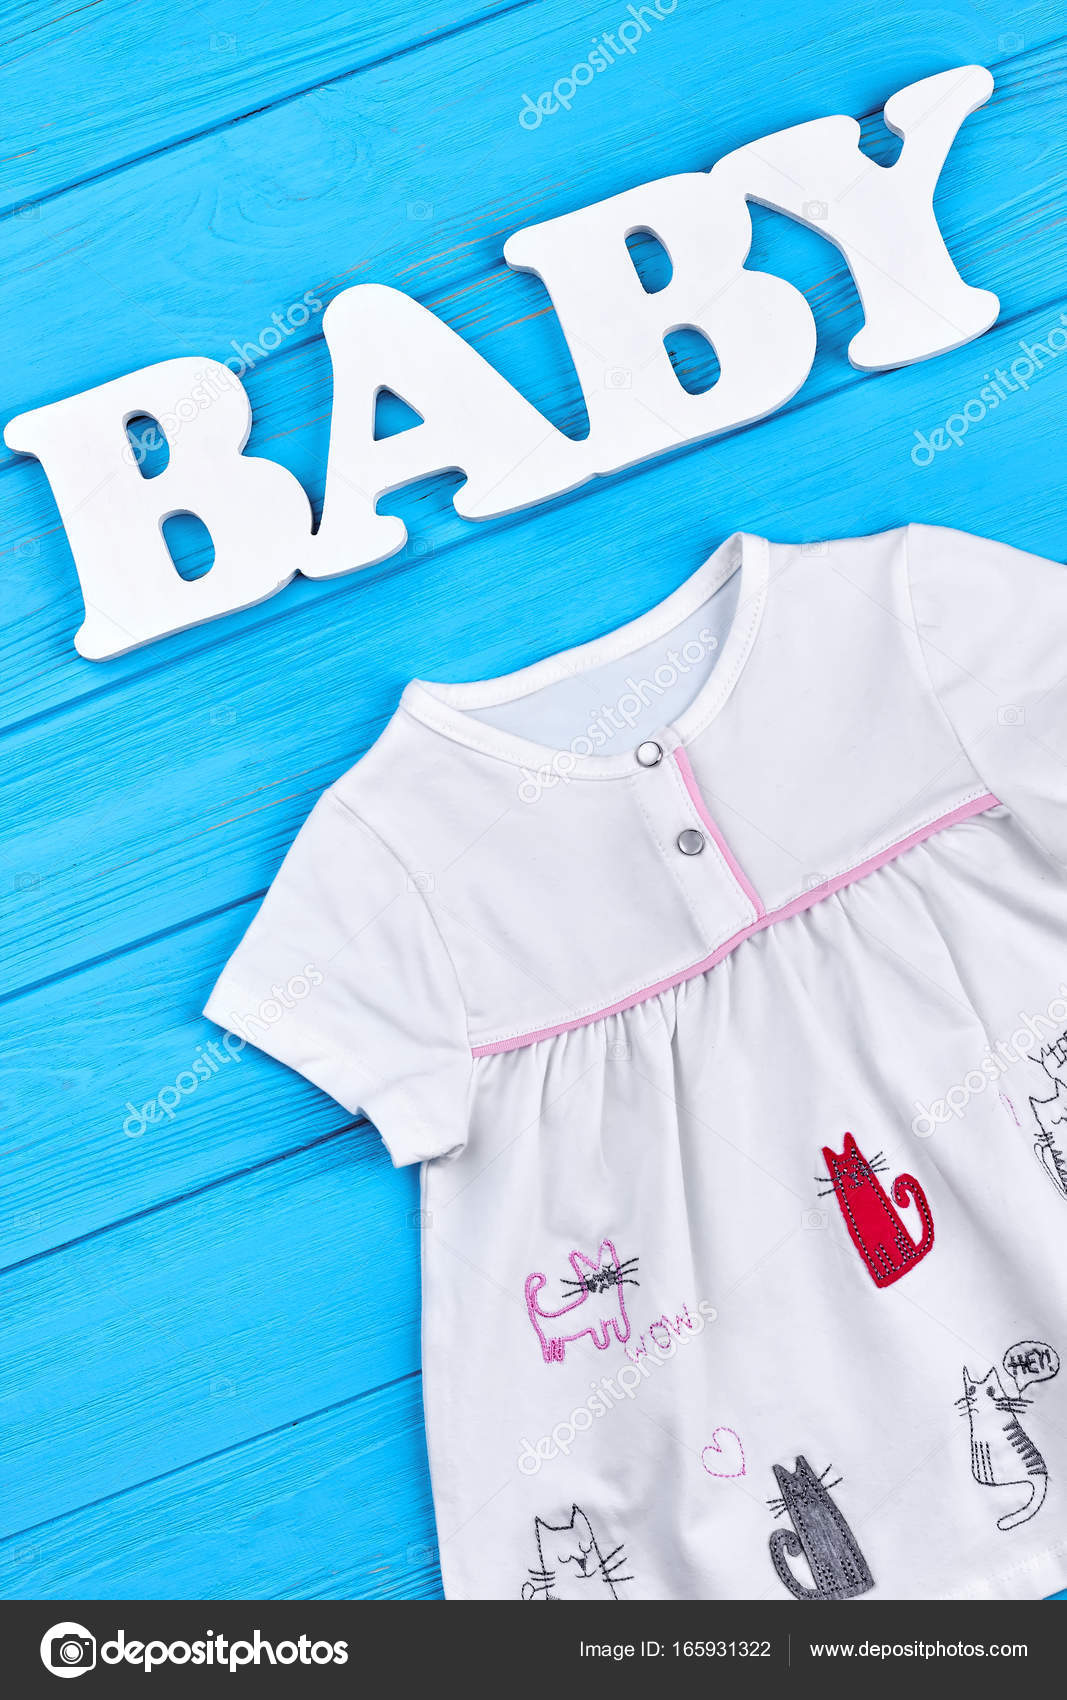 6a162a0d82fd Baby-girl summer fashion outfit. — Stock Photo © Denisfilm  165931322